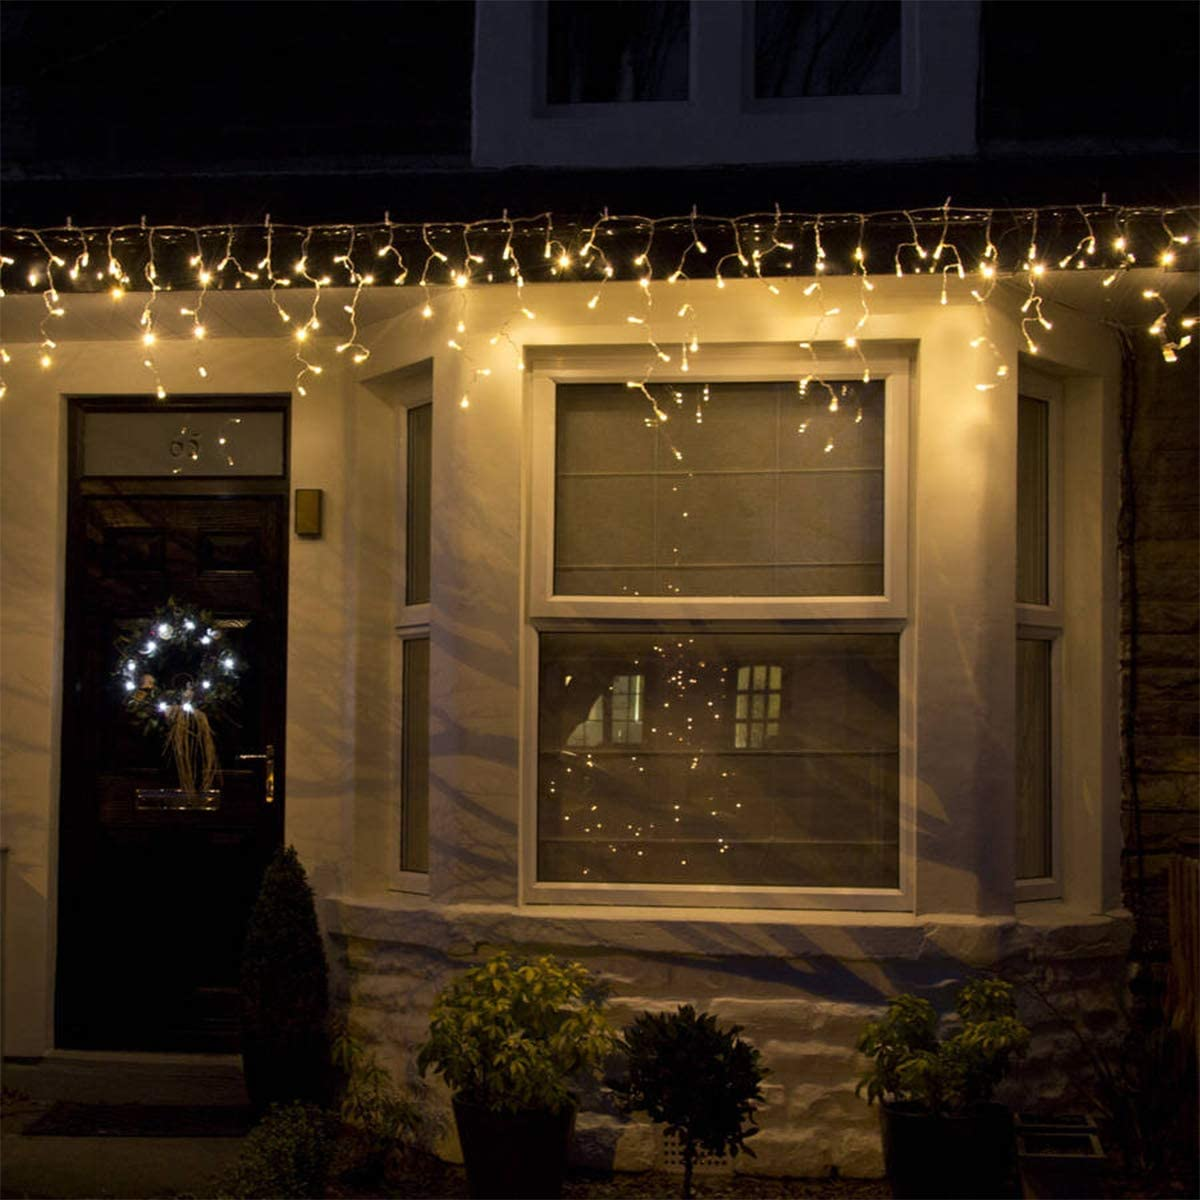 TORCHSTAR 16.4ft LED Starry Long Drop Icicle Lights with 216 LEDs, 8 Work Modes Fairy Lights, Warm White